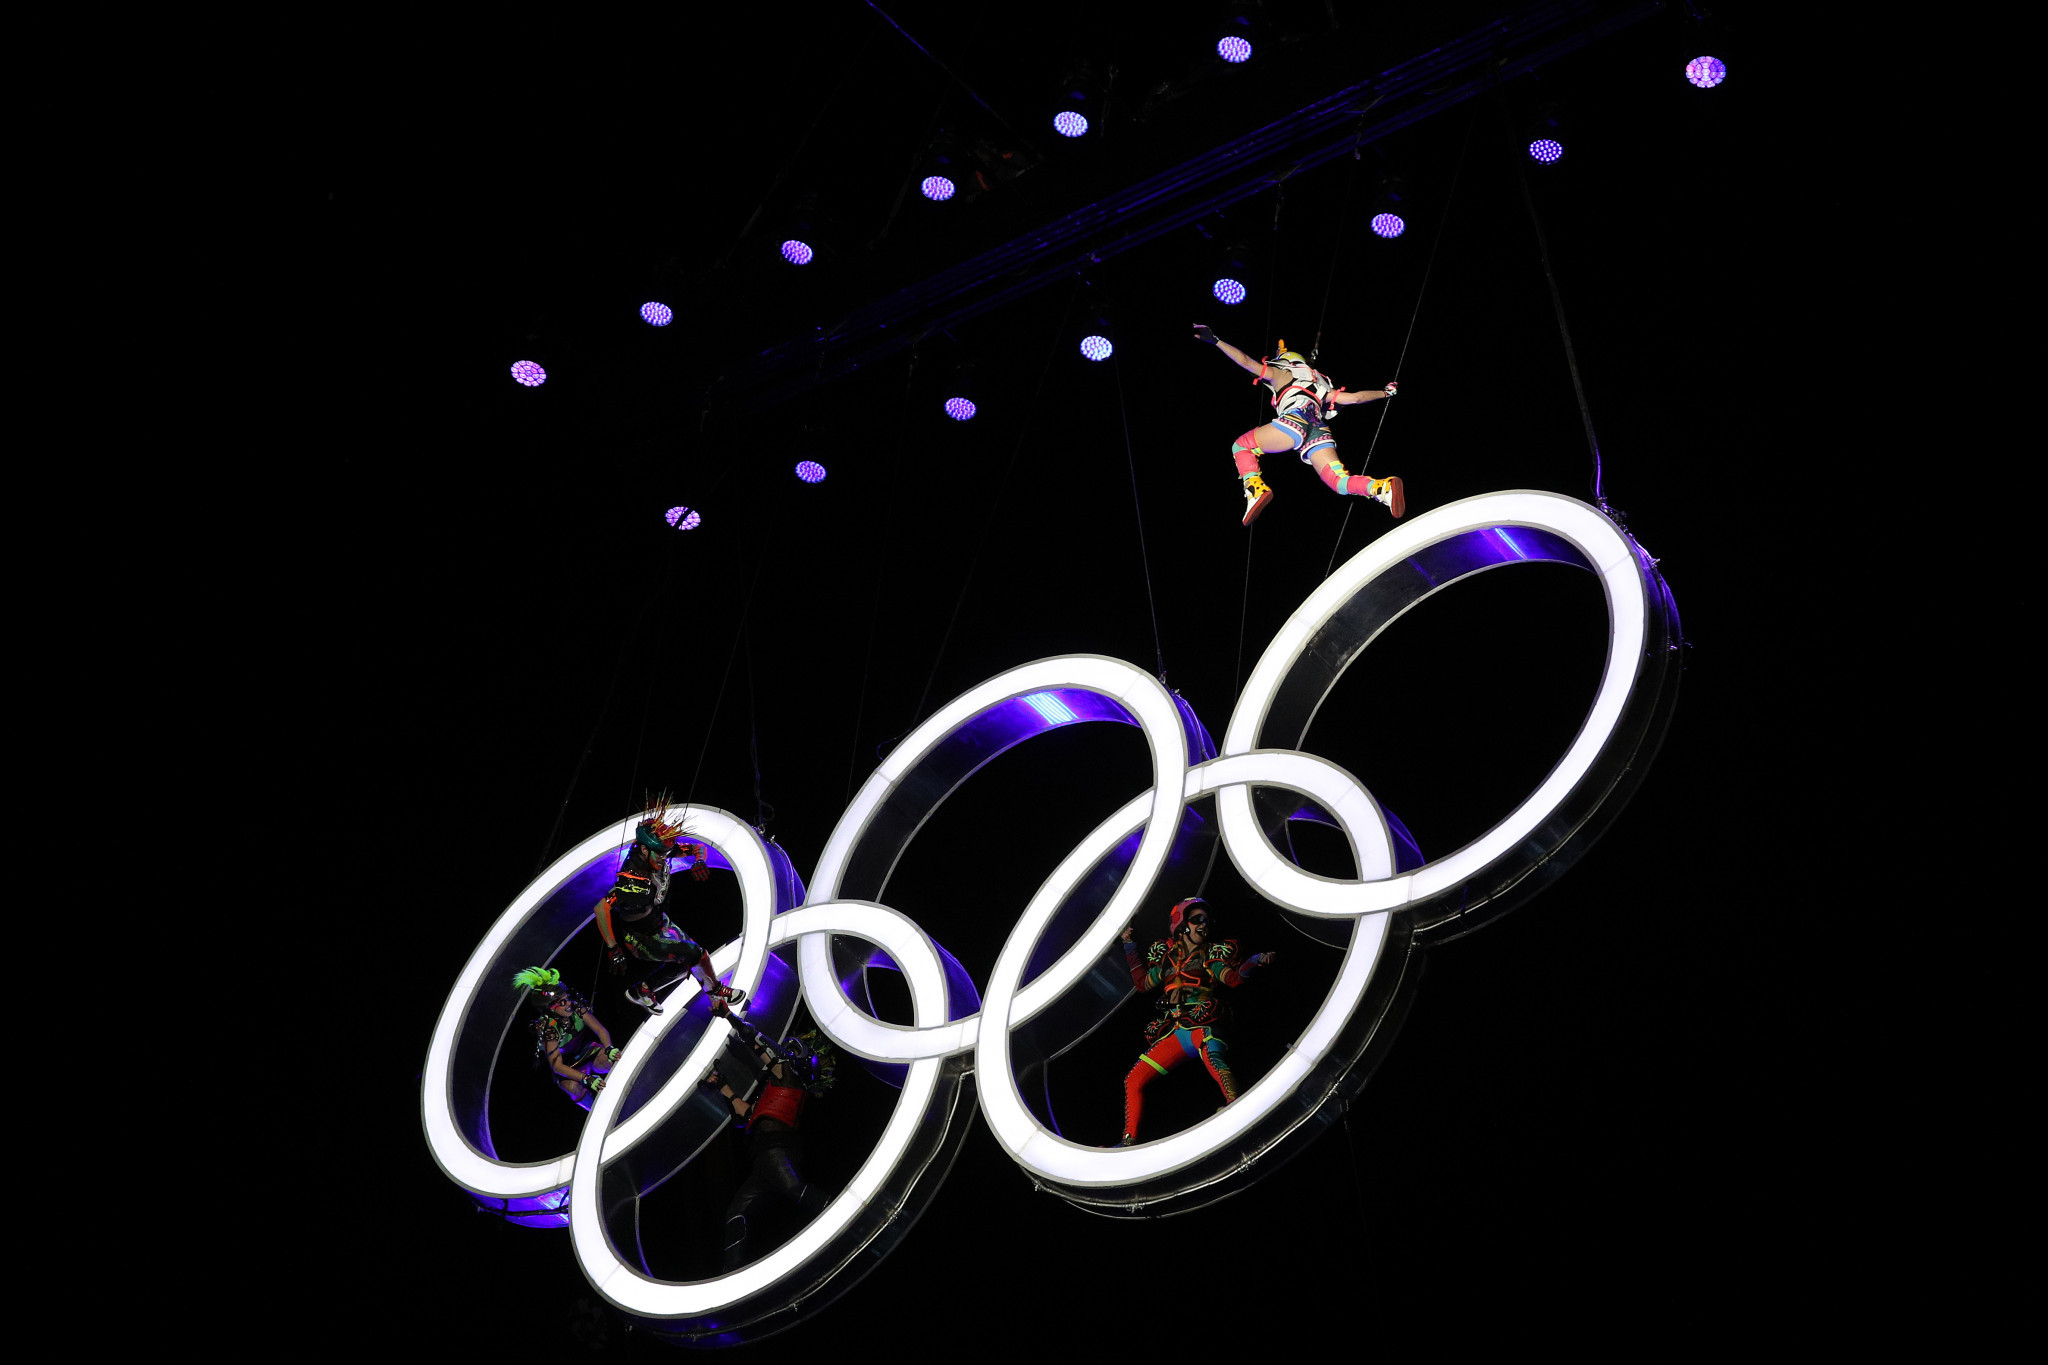 Buenos Aires 2018 Summer Youth Olympic Games: Opening Ceremony